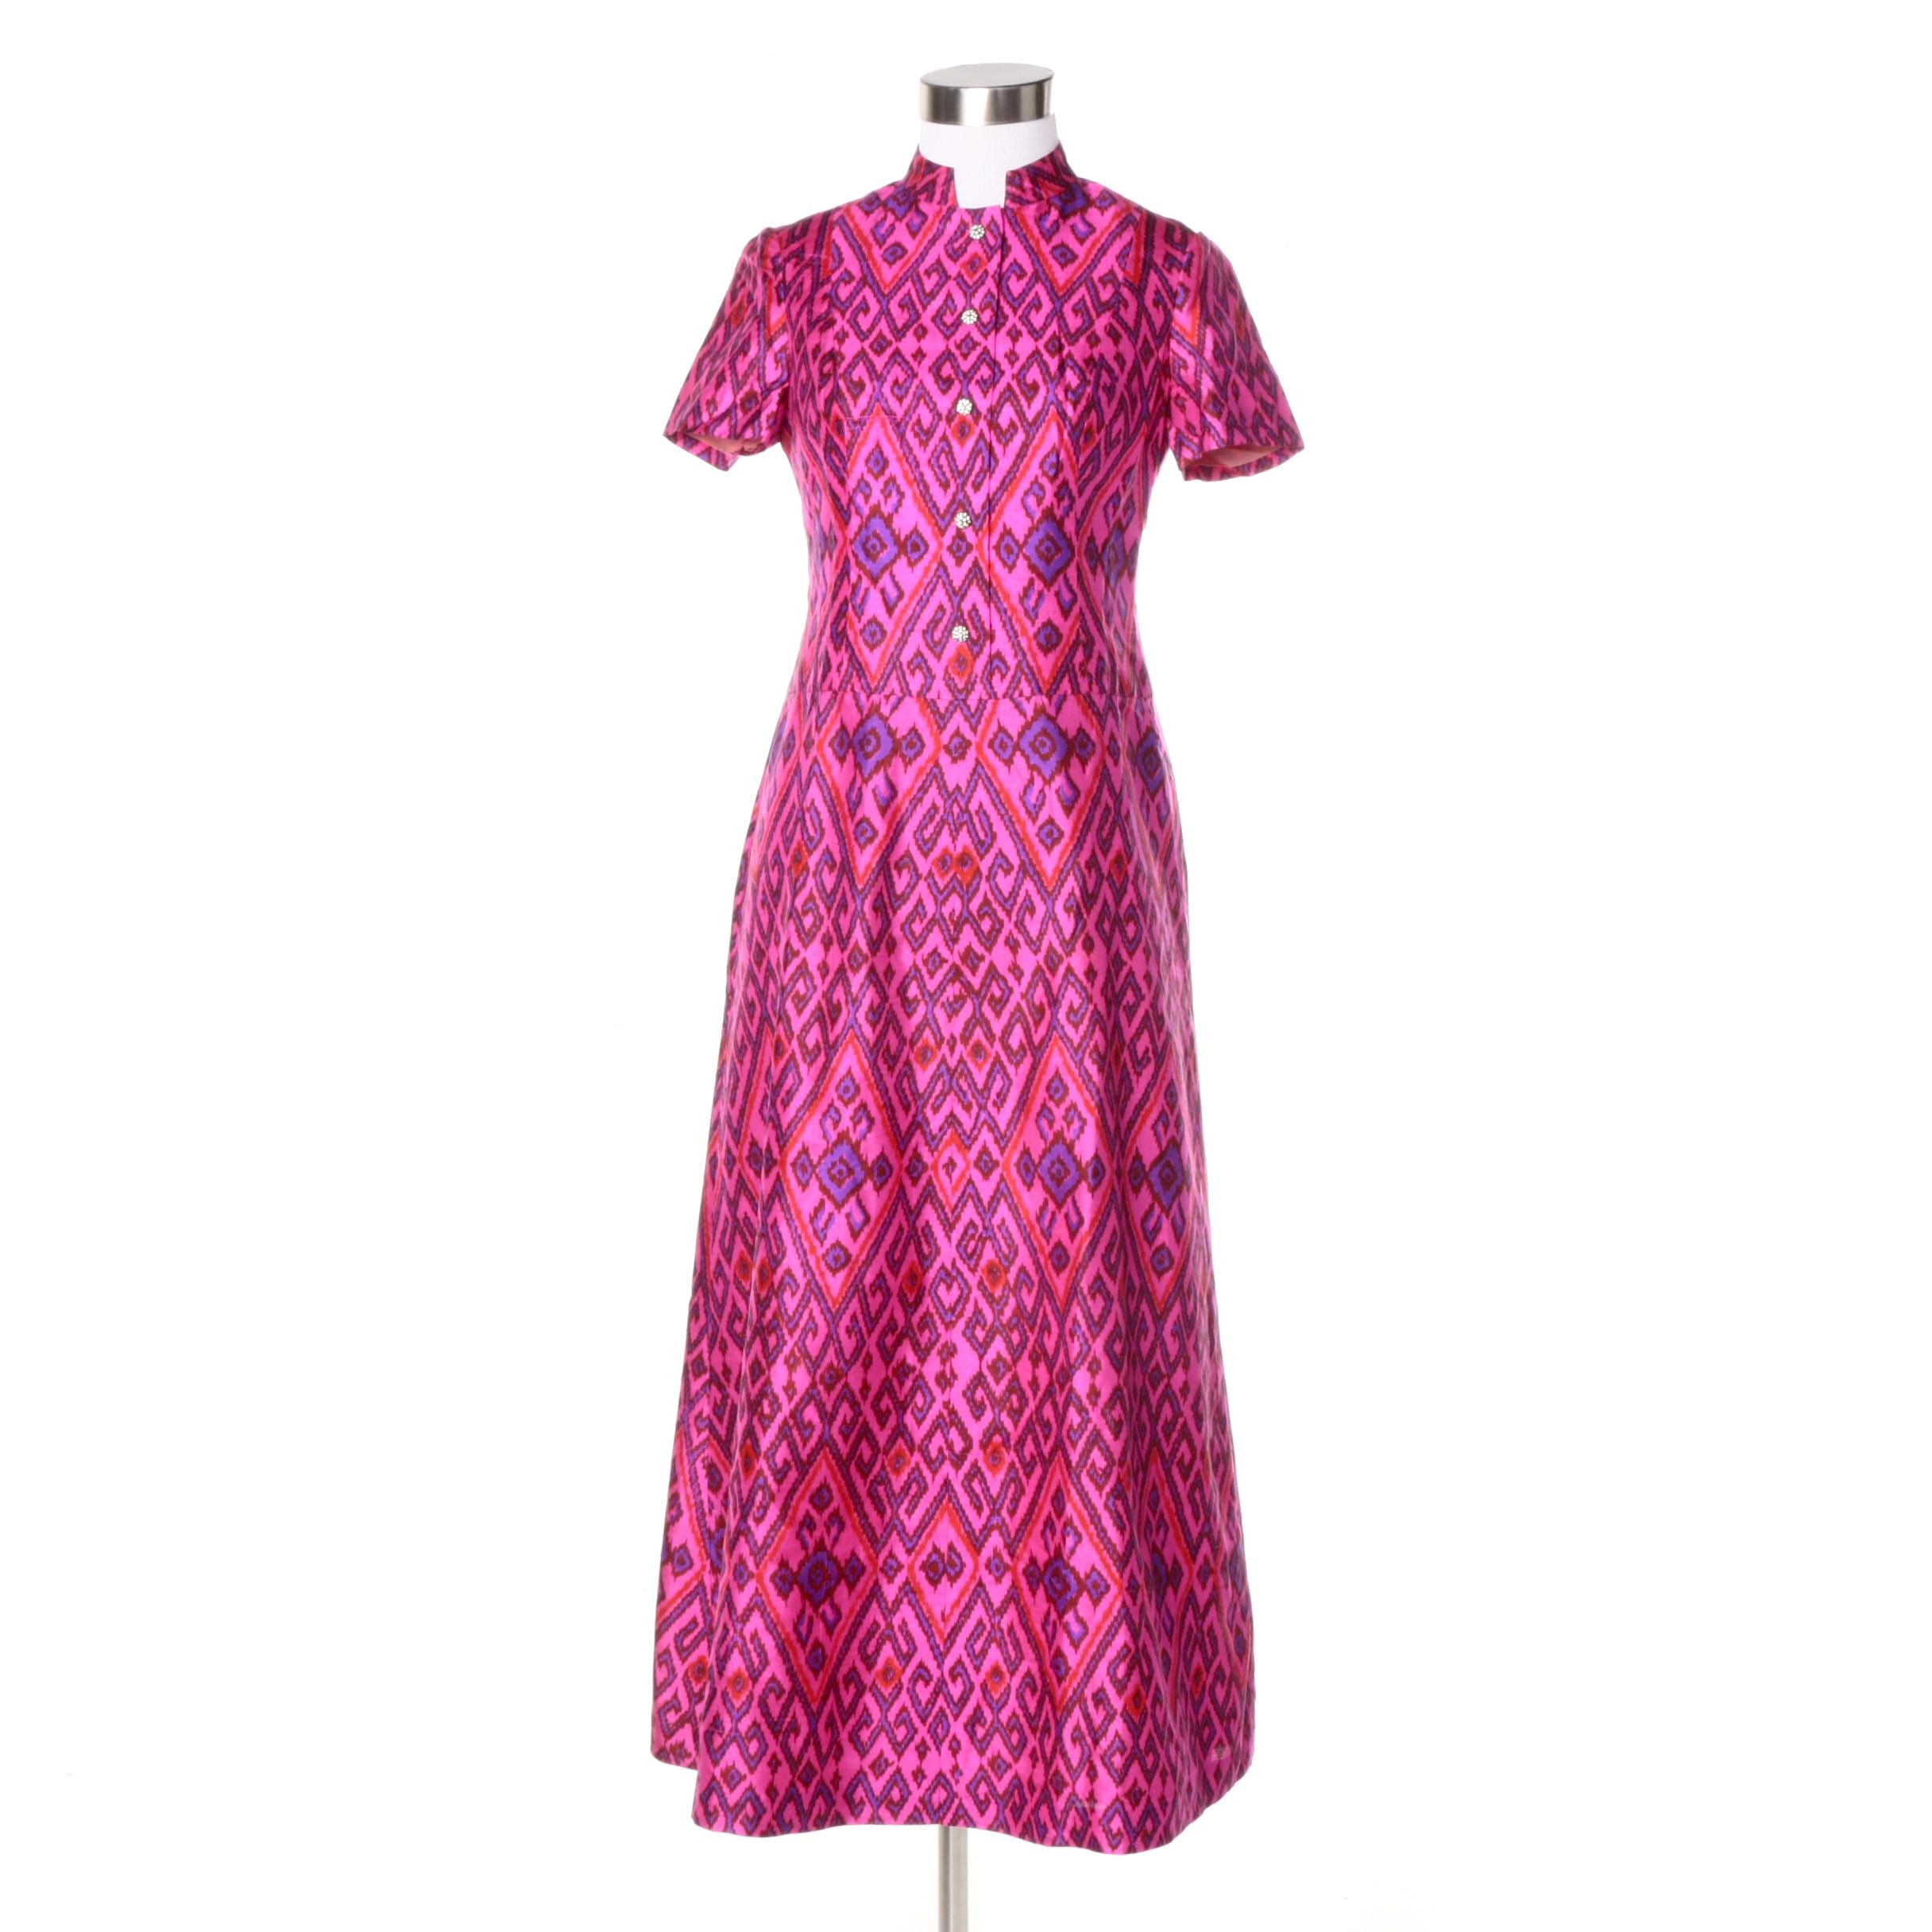 Circa 1960s Bespoke Silk Blend Dress with Rhinestone Buttons